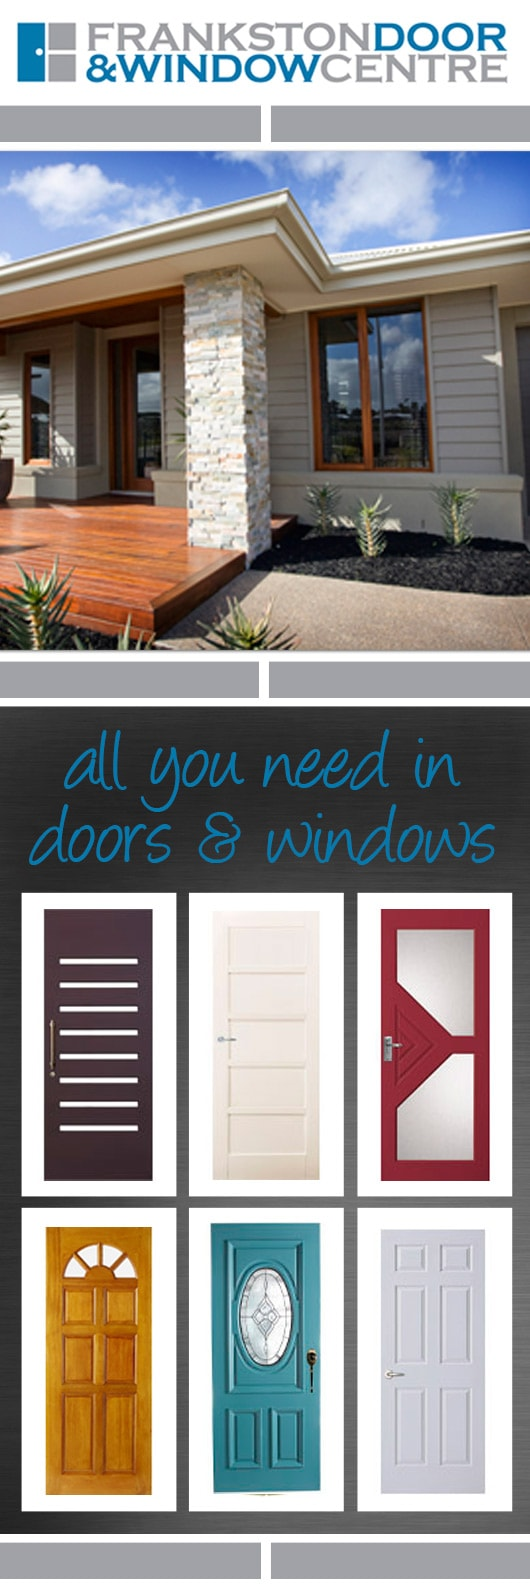 Frankston Door \u0026 Window Centre - Promotion & Frankston Door \u0026 Window Centre - Doors \u0026 Door Fittings - FRANKSTON